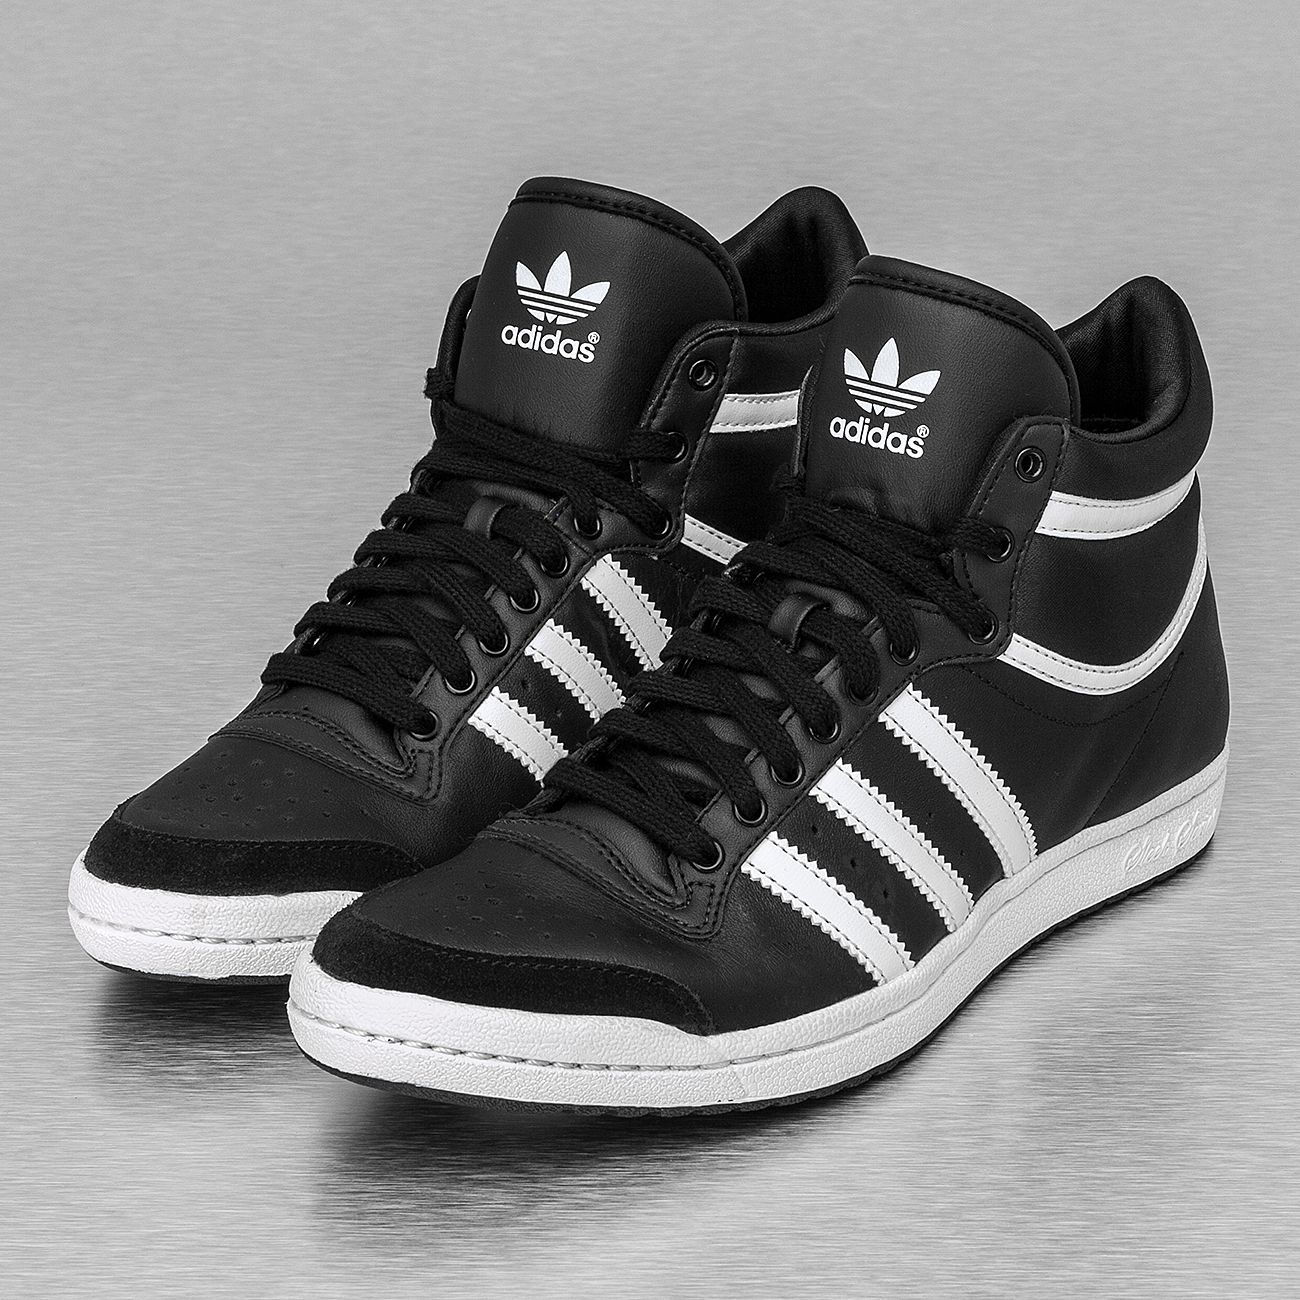 Adidas Top Ten Hi Sleek baskets